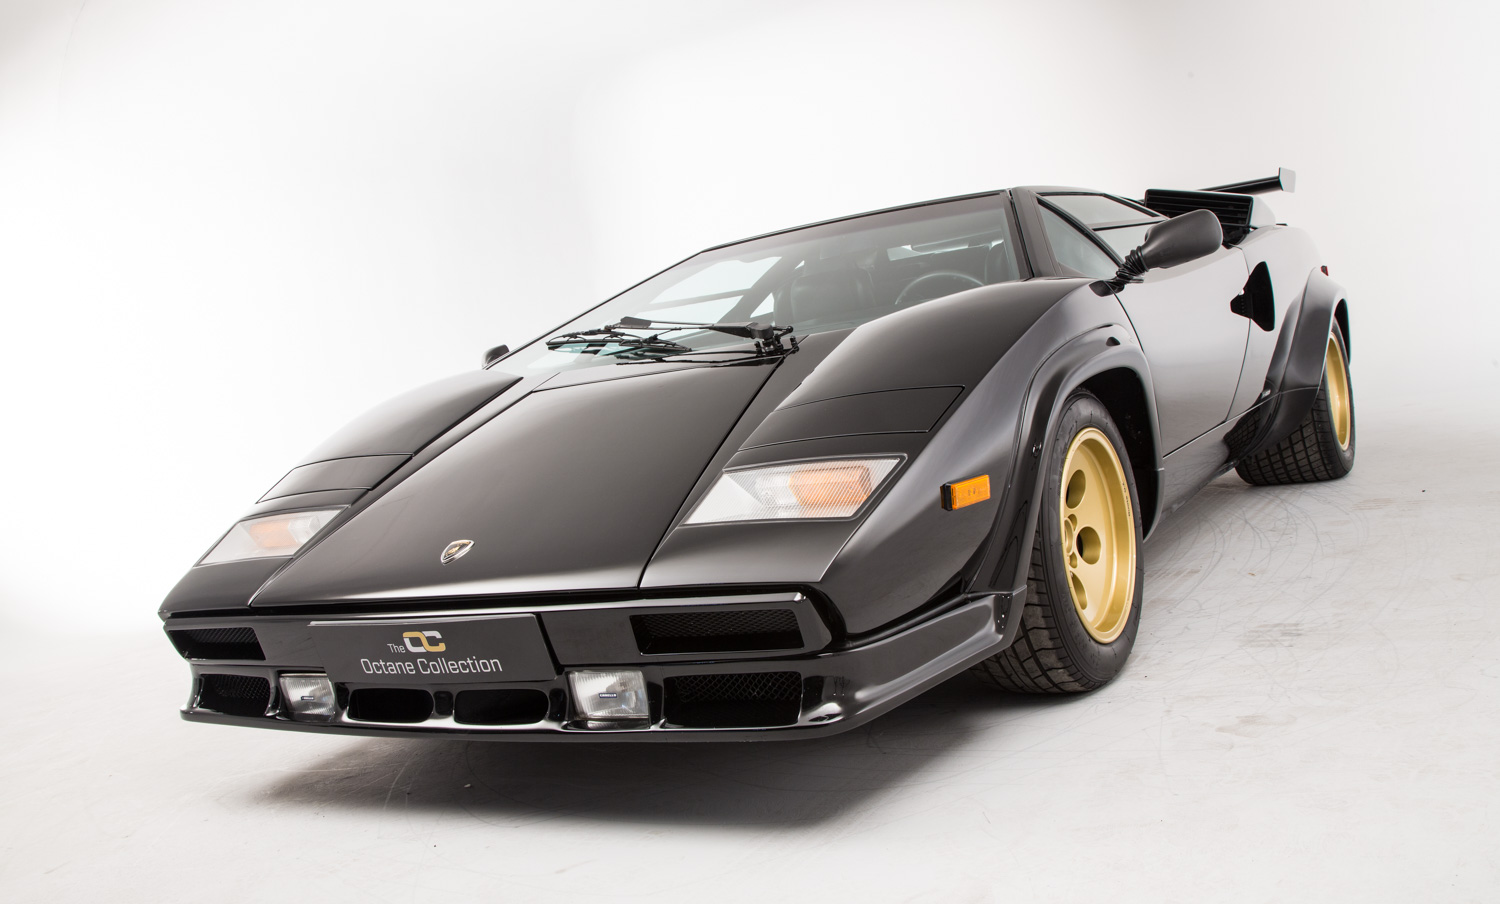 lamborghini countach 5000 qv price lamborghini countach. Black Bedroom Furniture Sets. Home Design Ideas